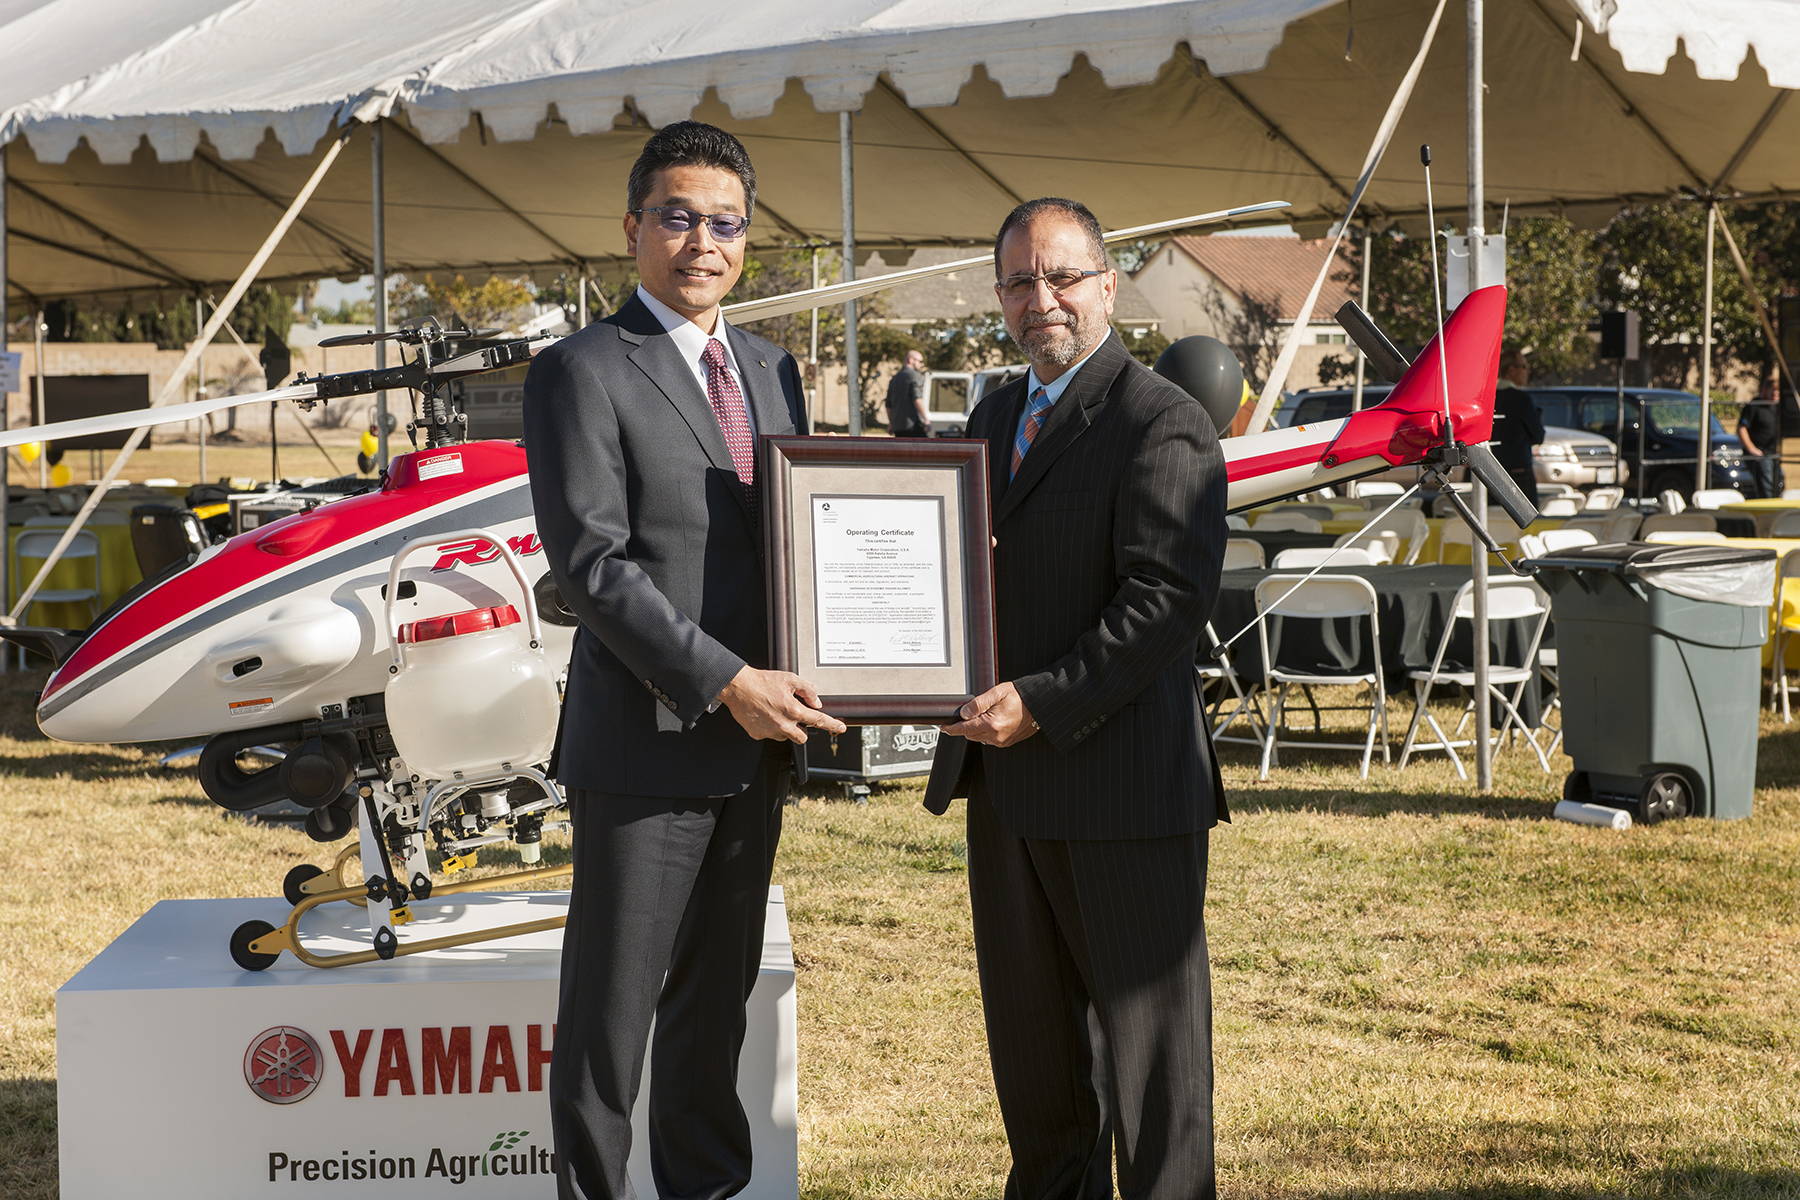 Terry_Okawa_left_president_Yamaha_Motor_Corpora-10b2ac63a174b2f2a7732a3c3adb3a59 Yamaha Gets FAA Certification for RMAX Unmanned Helicopter